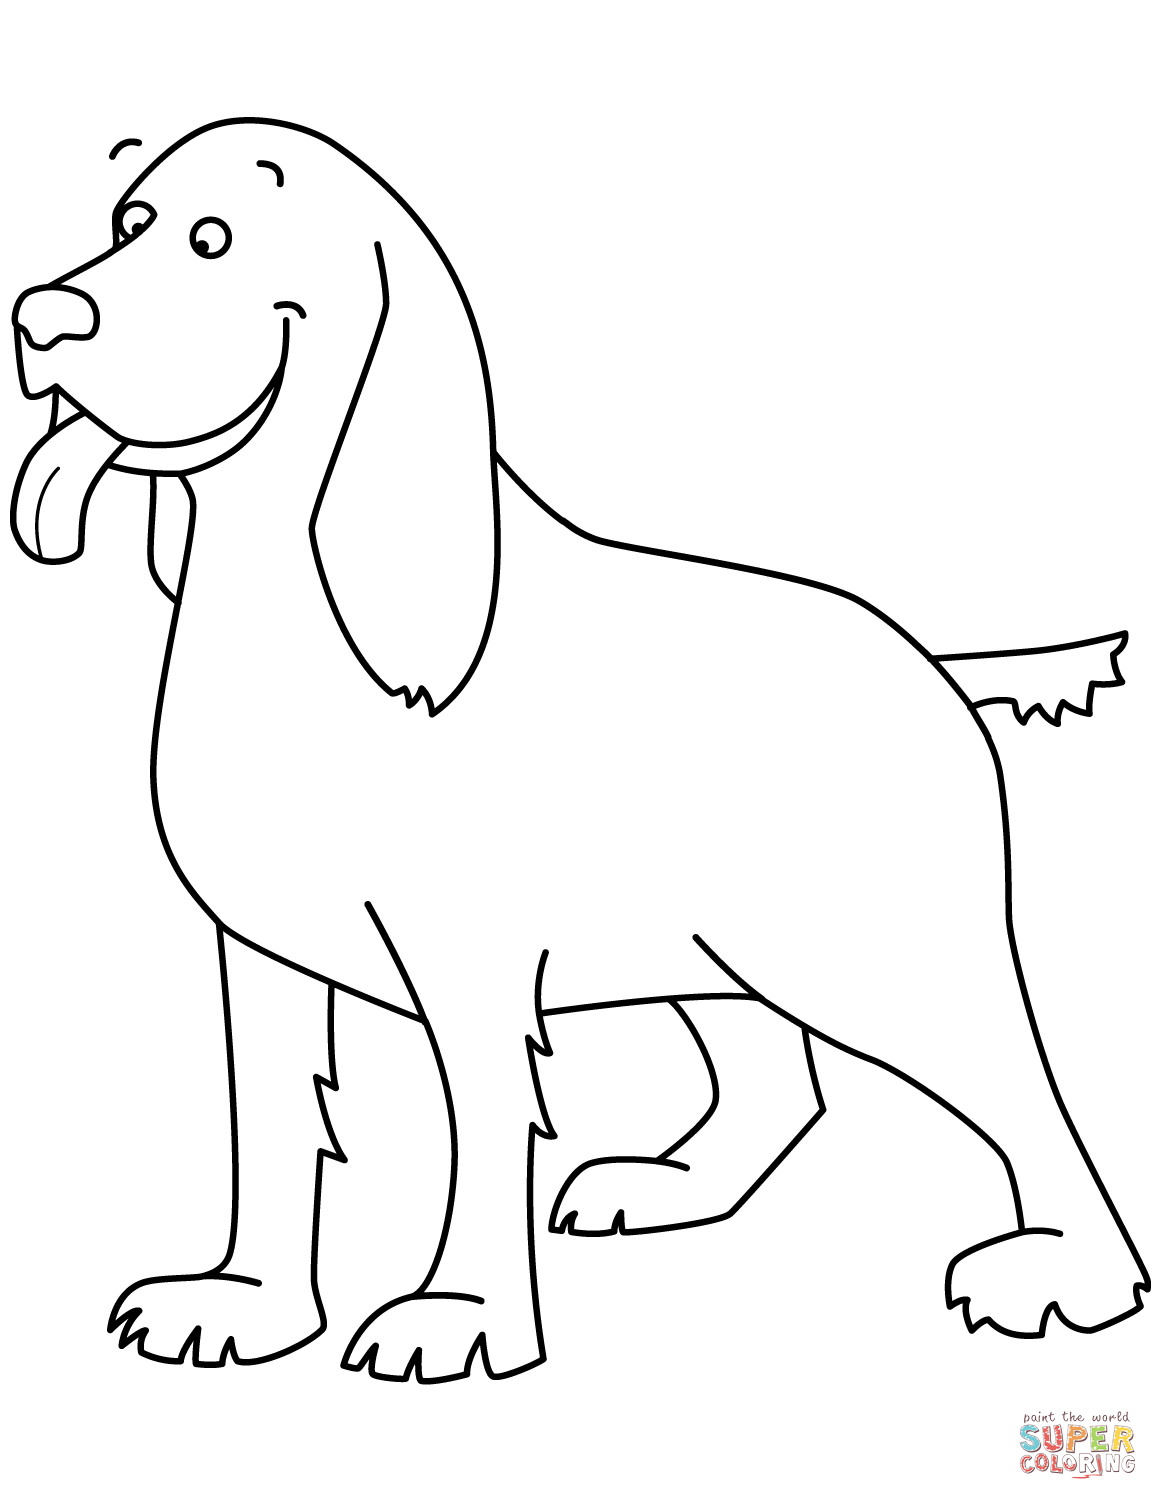 Beagle Dog Coloring Pages At Getcolorings